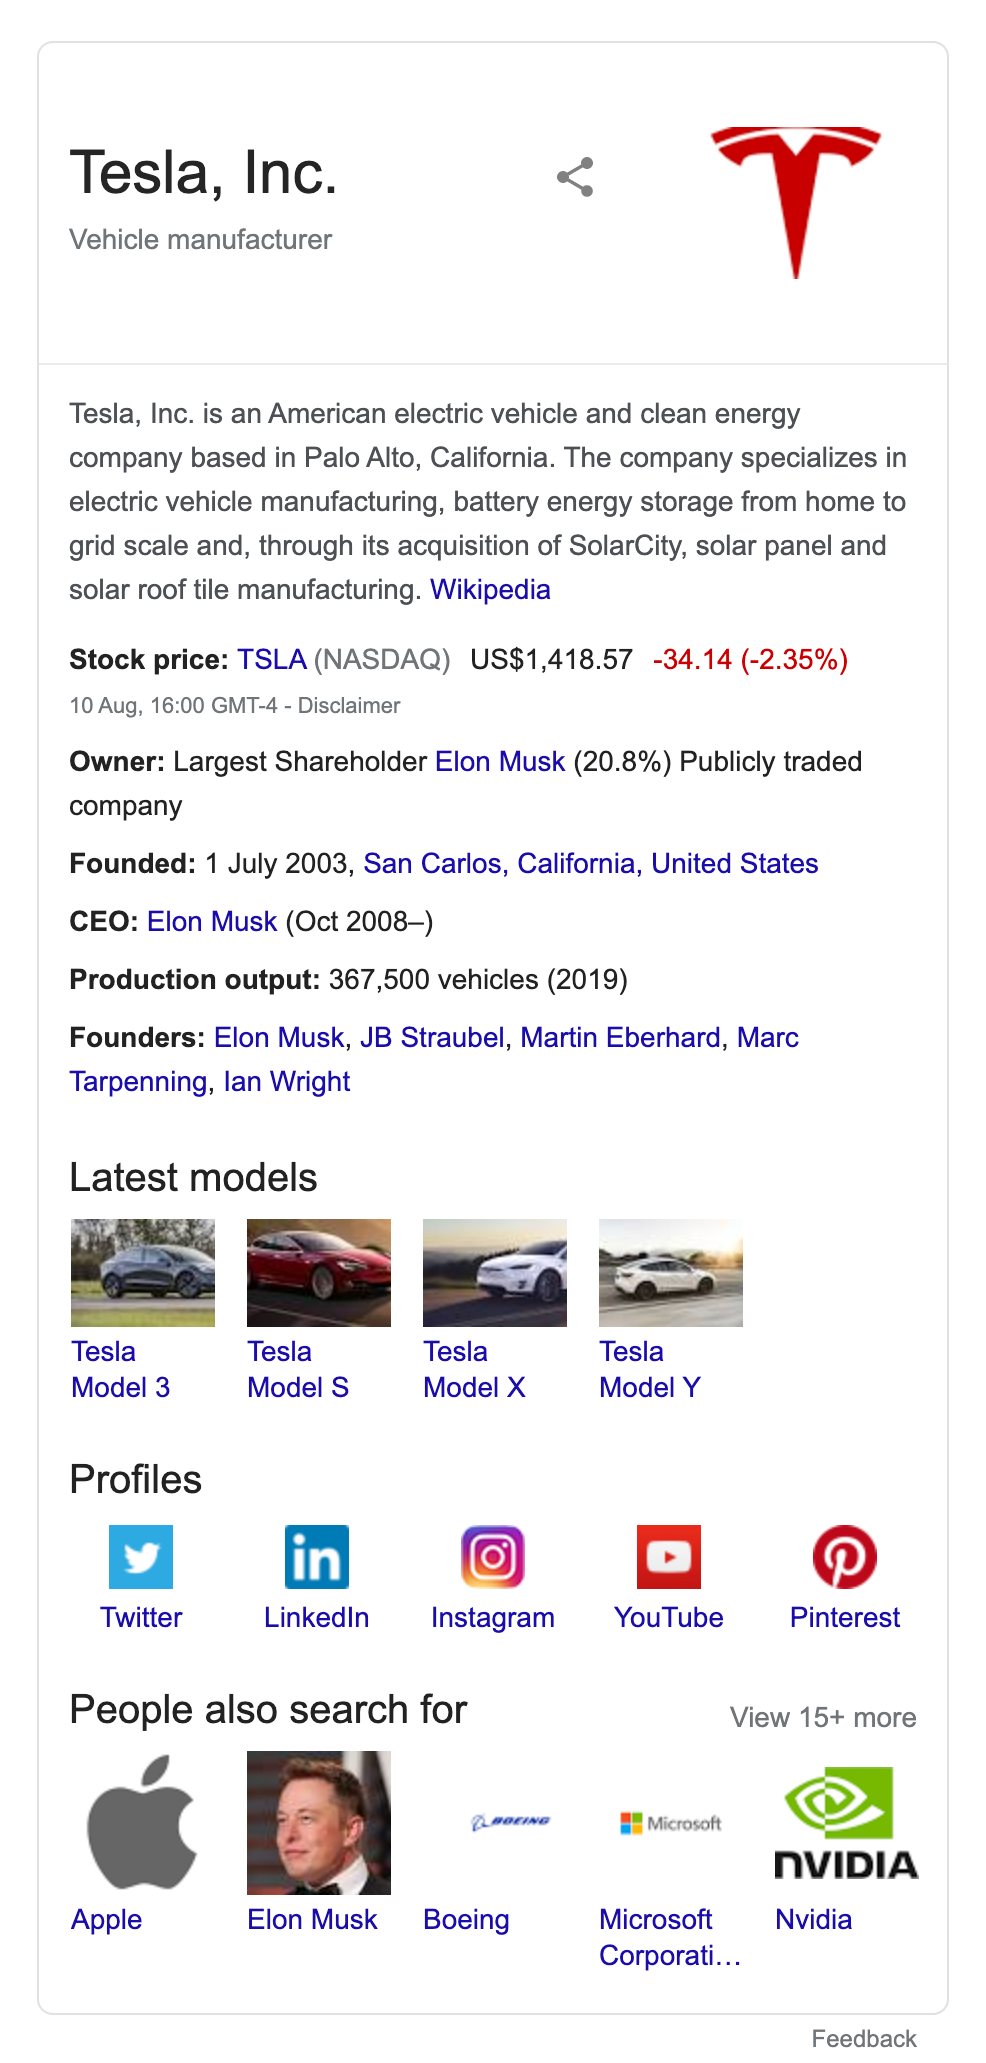 Organization Knowledge Panel Rich Snippet in SERP.